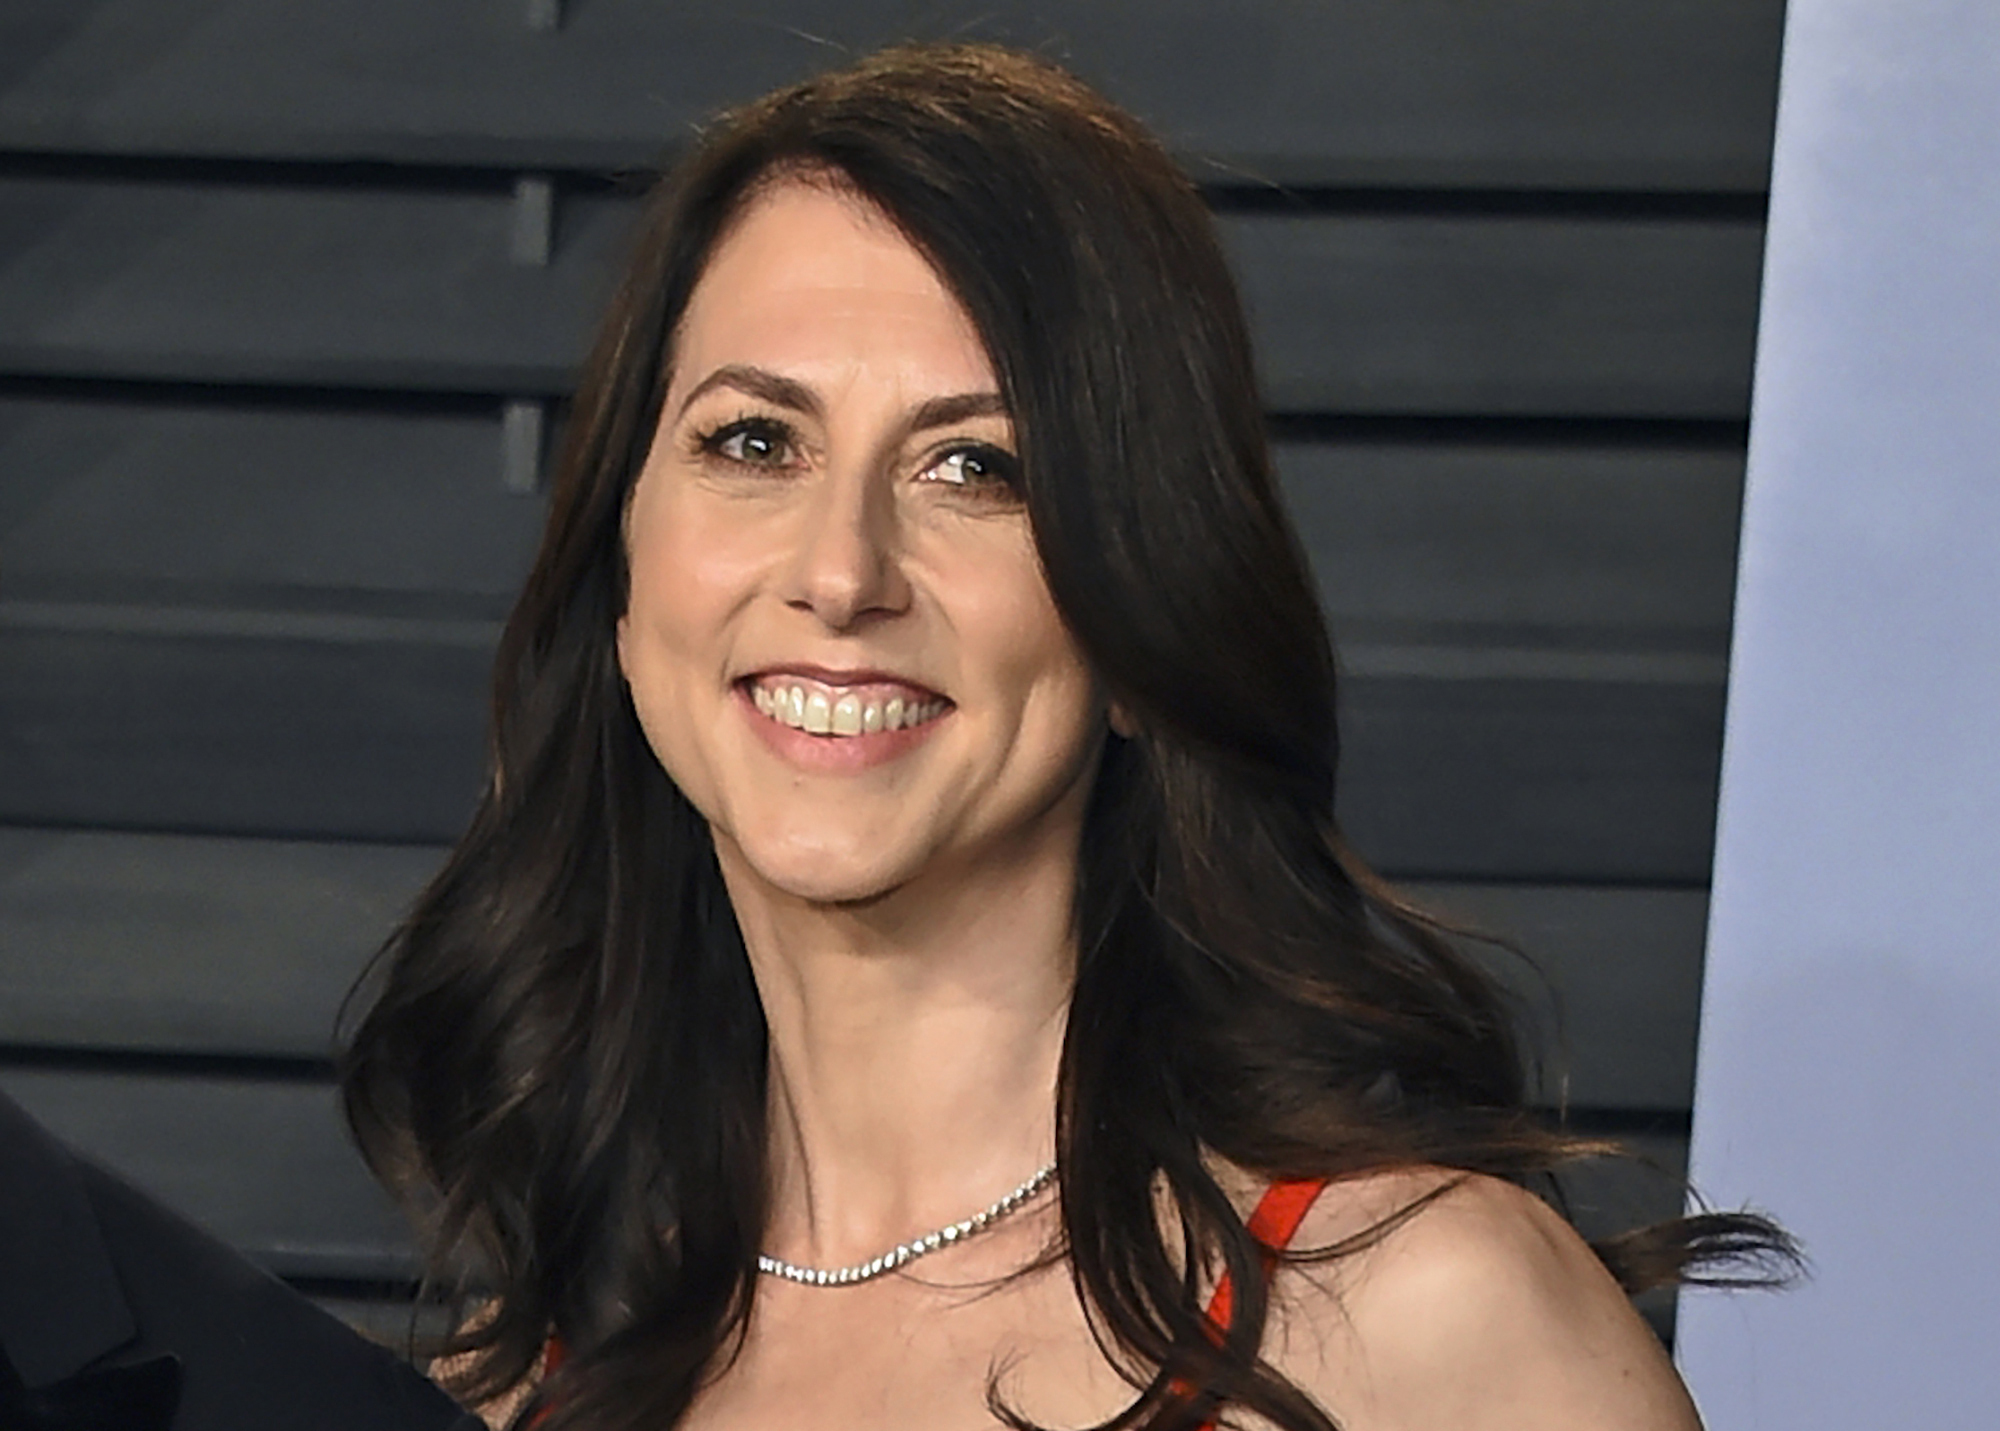 In this March 4, 2018, file photo, then-MacKenzie Bezos arrives at the Vanity Fair Oscar Party in Beverly Hills, Calif. (Photo by Evan Agostini/Invision/AP, File)